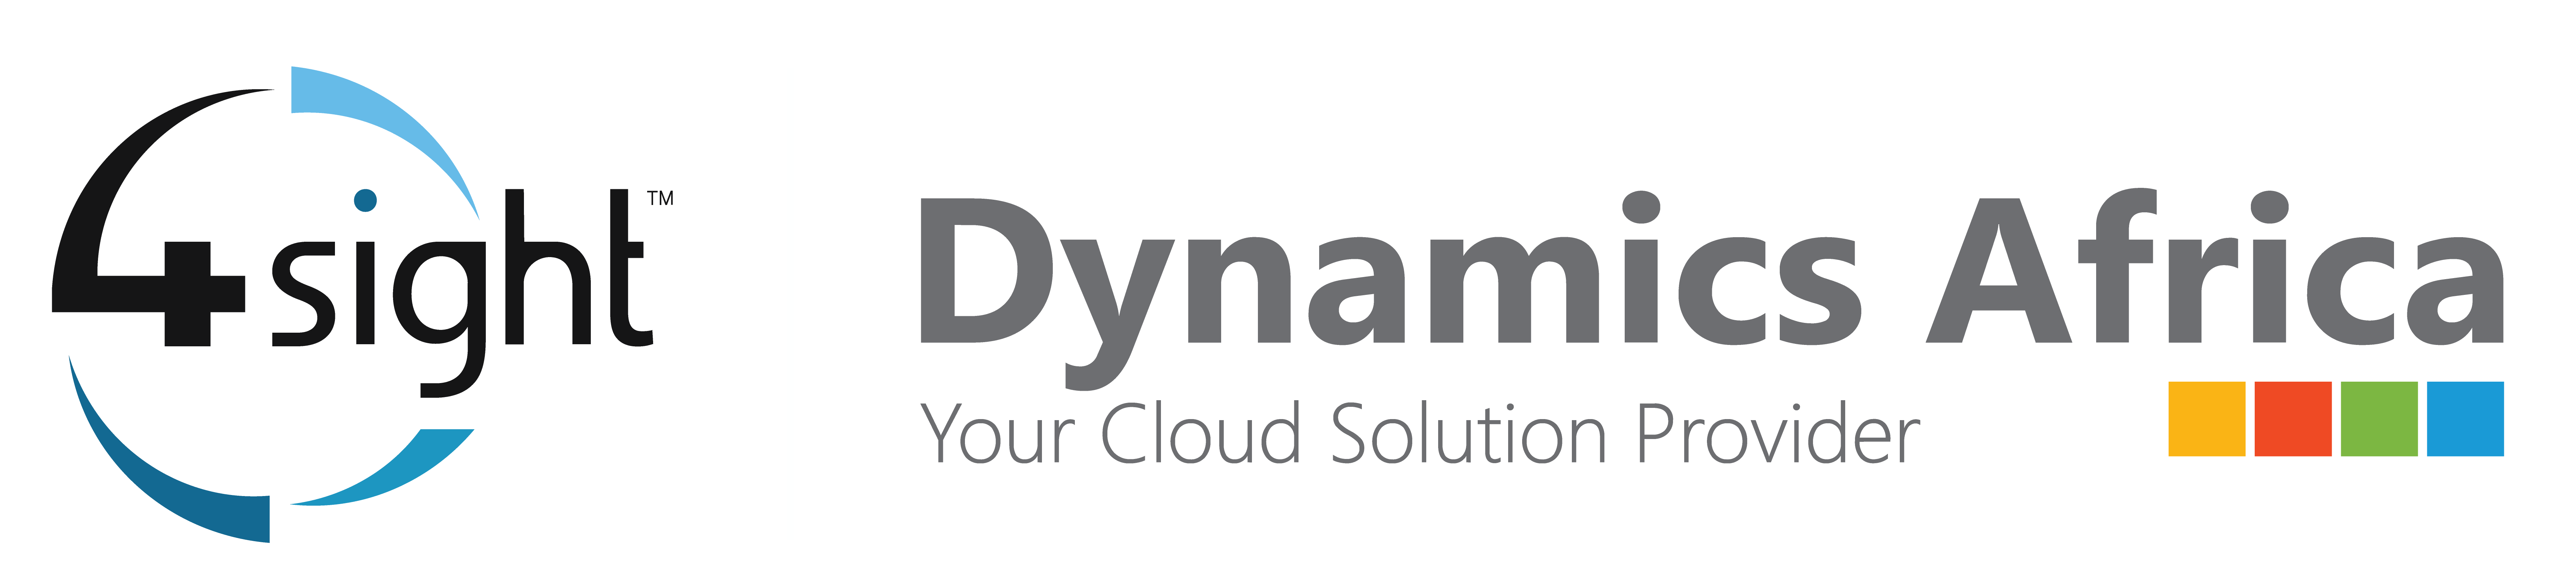 Dynamics Africa – CSP Provider